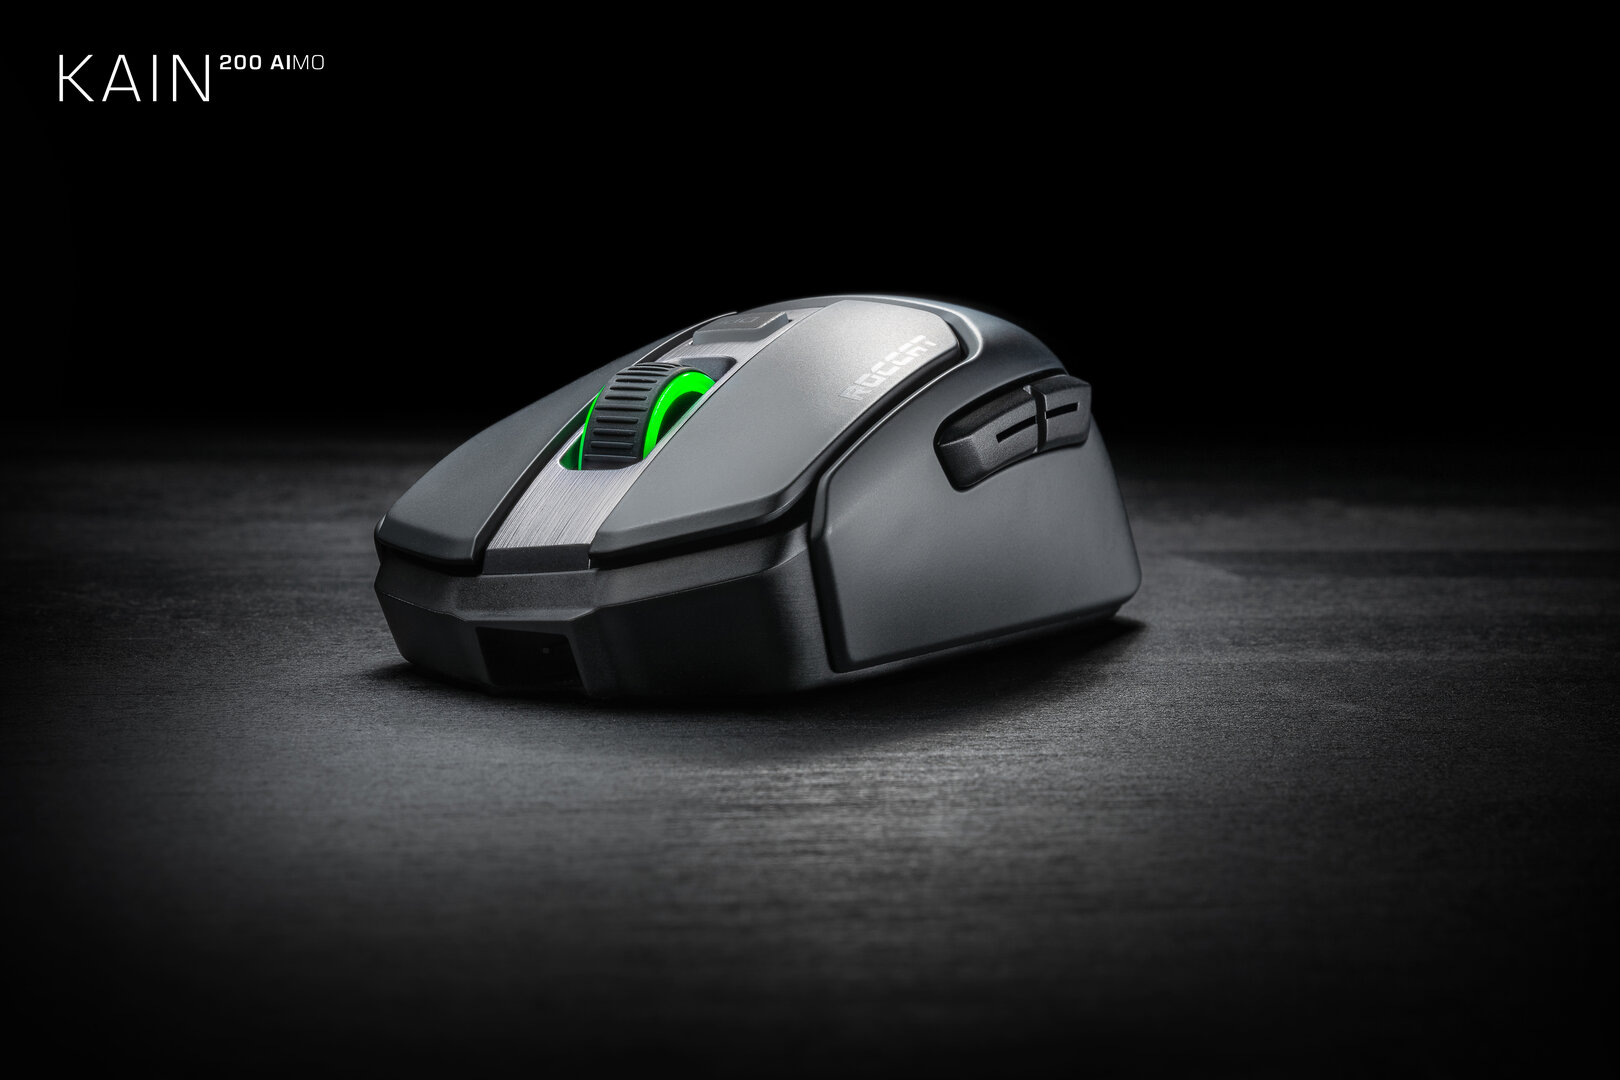 Roccat Kain 200 Aimo